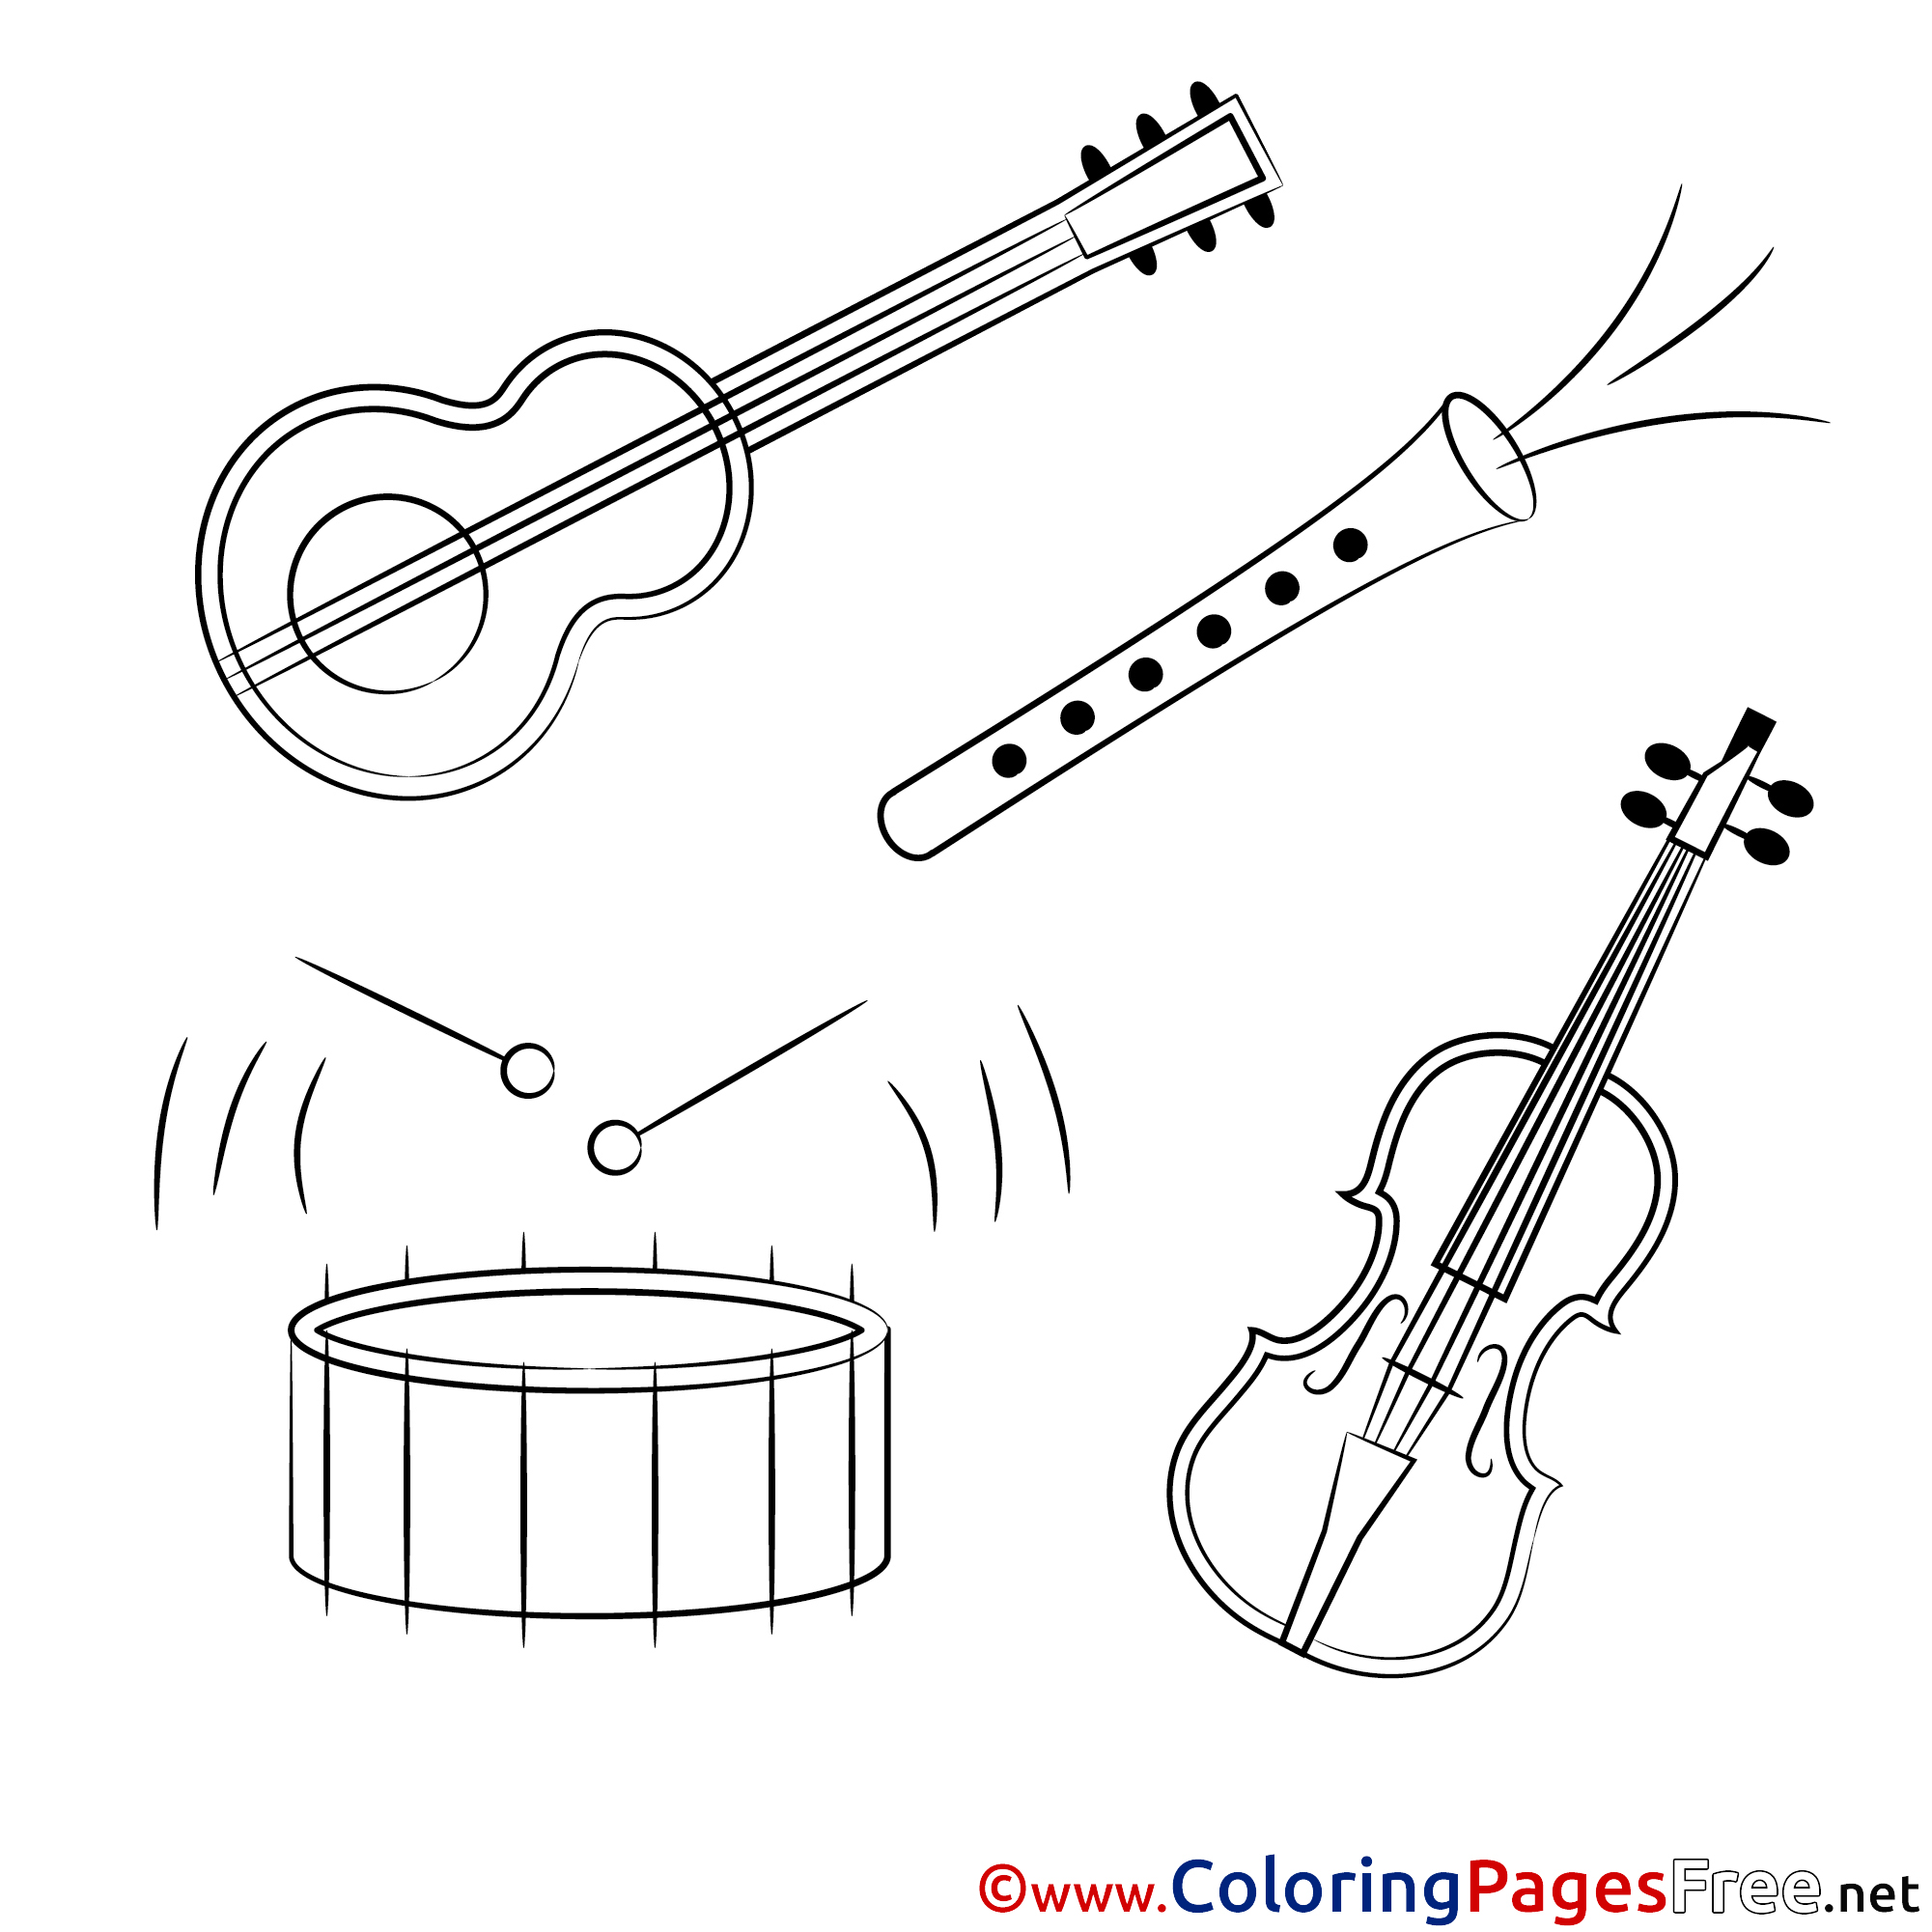 music instrument coloring page - Clip Art Library | 2001x2001